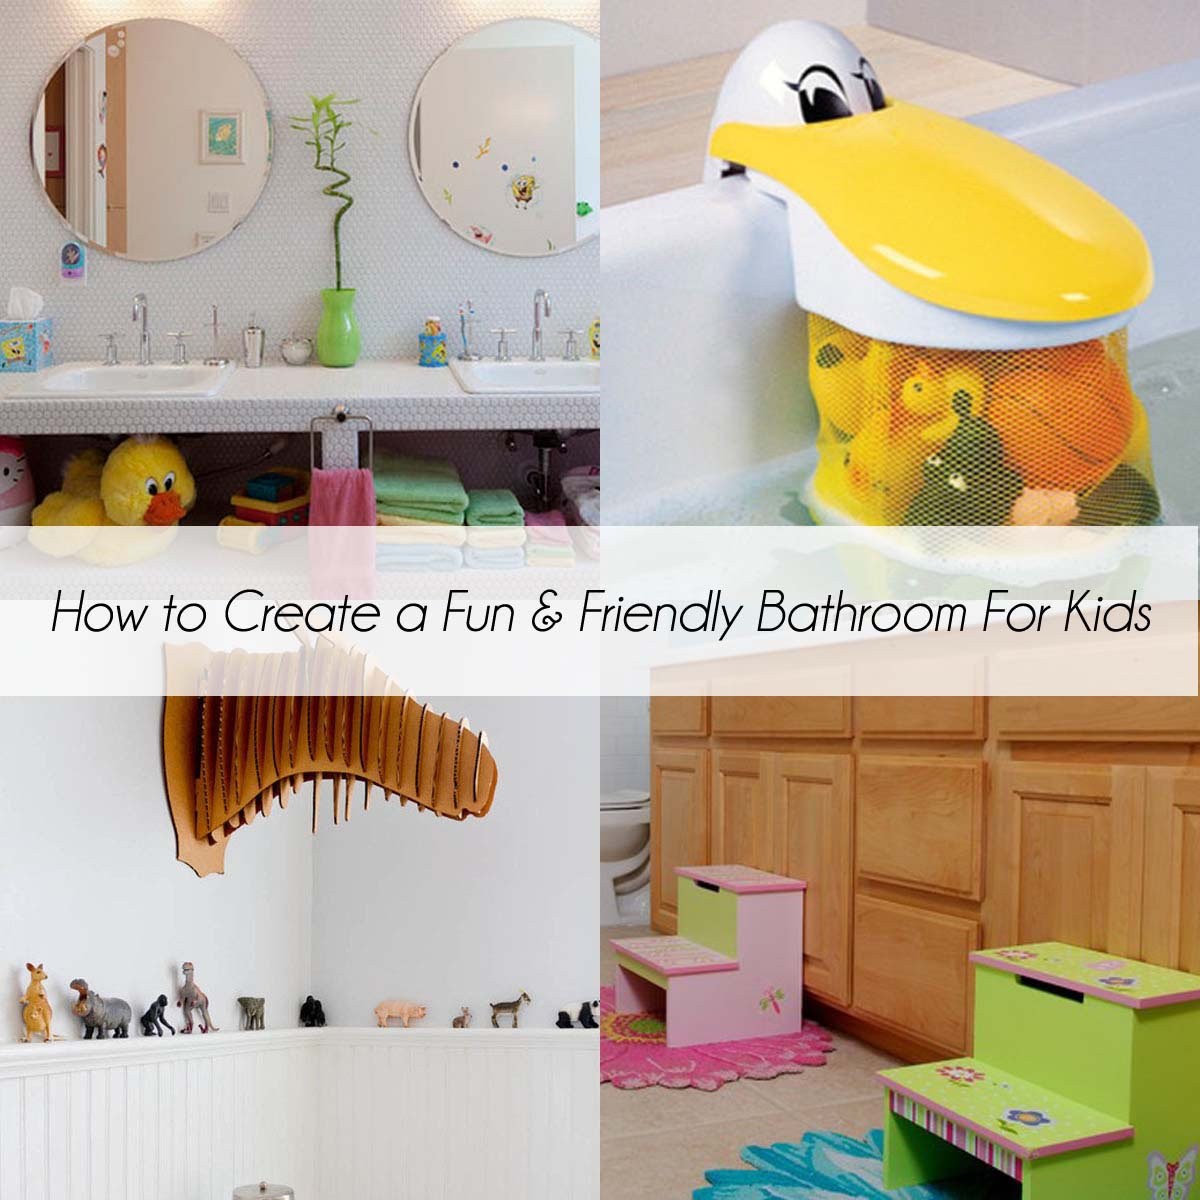 How To Create A Fun And Friendly Bathroom For Kids